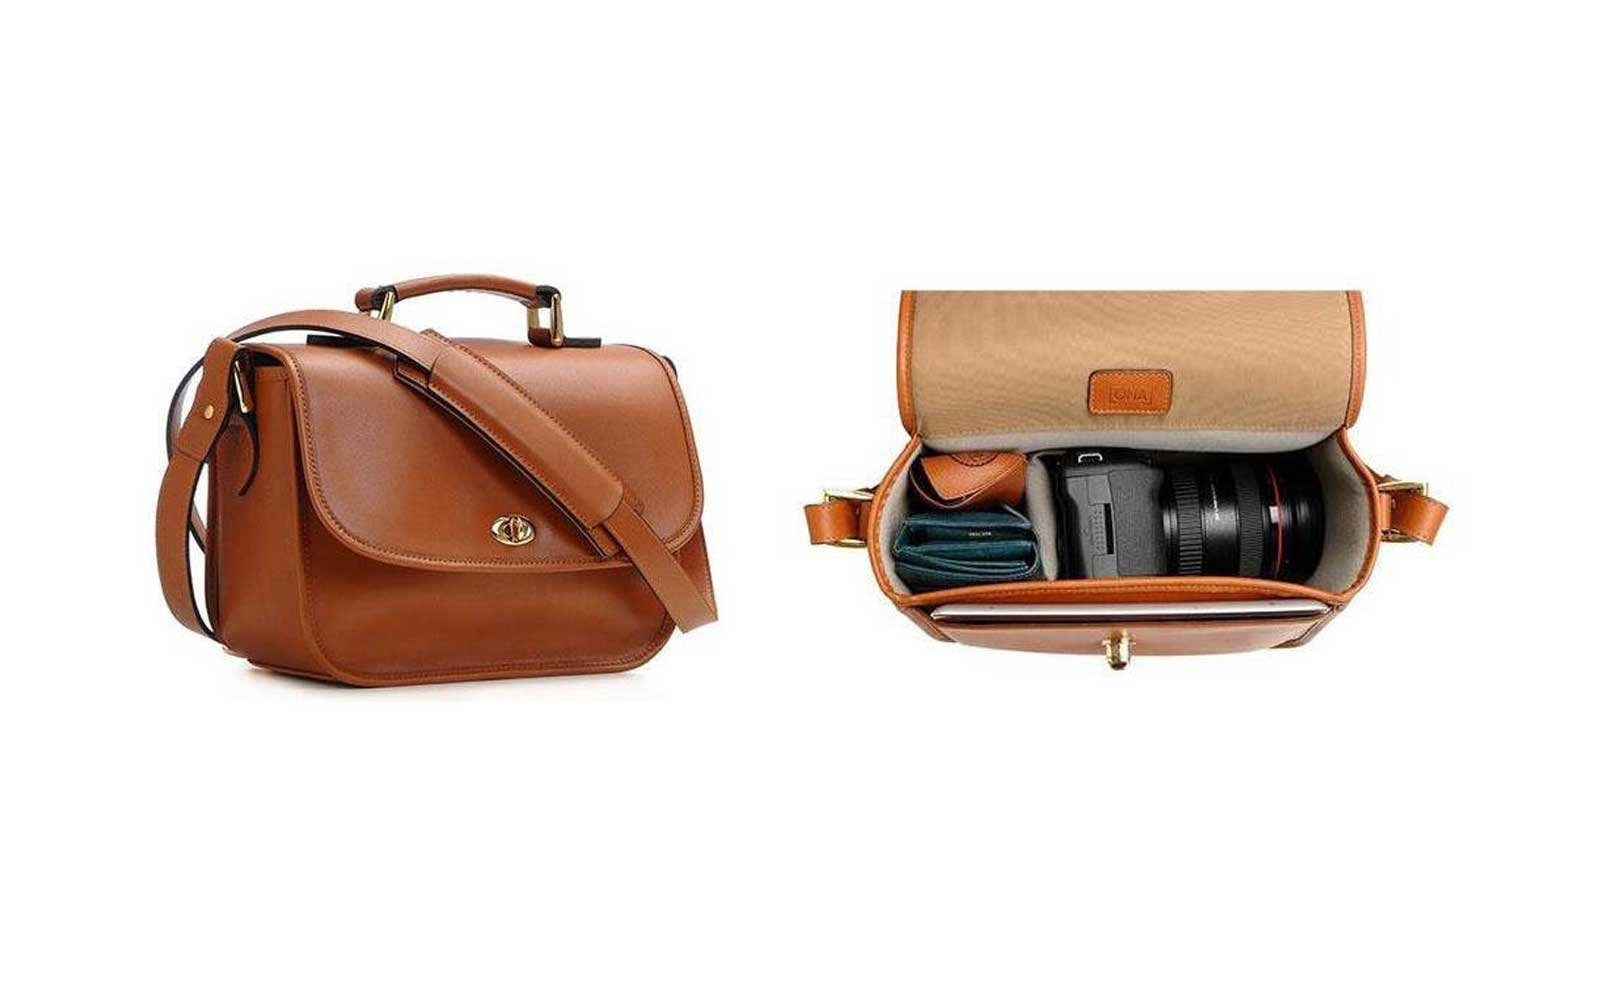 97cc6cd0667 14 Chic Camera Bags You'll Want to Bring Everywhere | Travel + Leisure